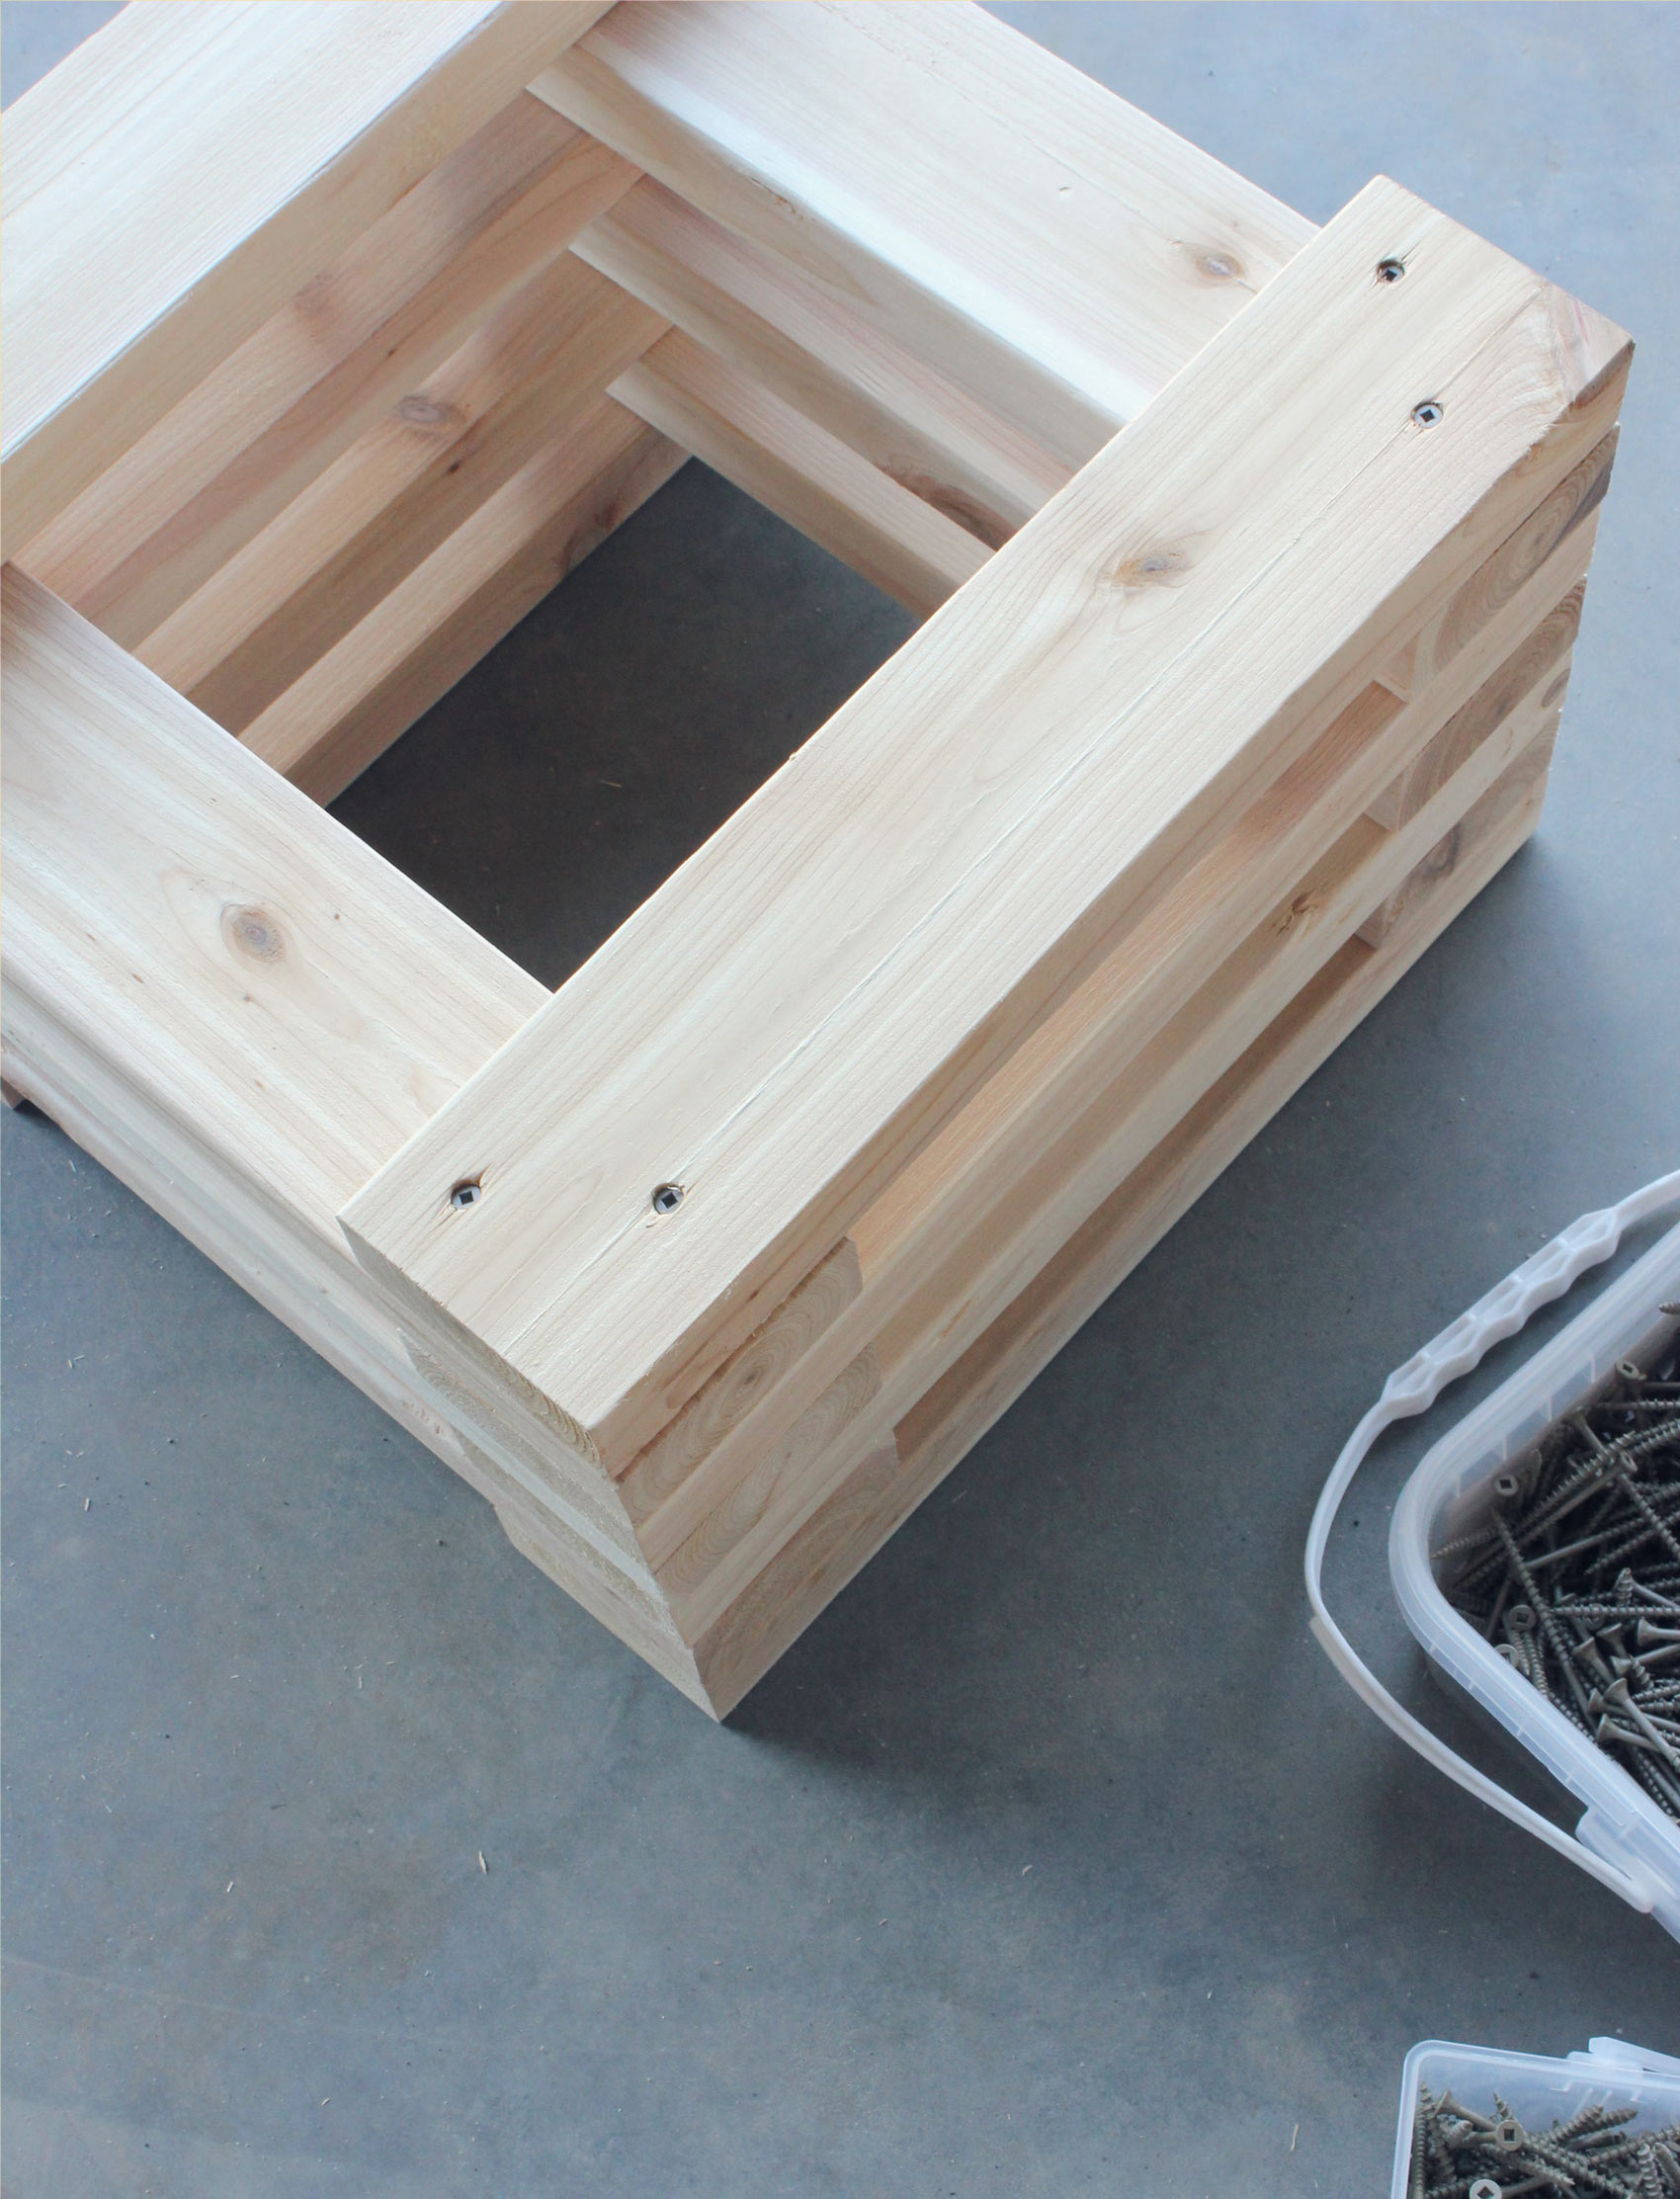 Summer Diy Challenge With The Home Depot The Build